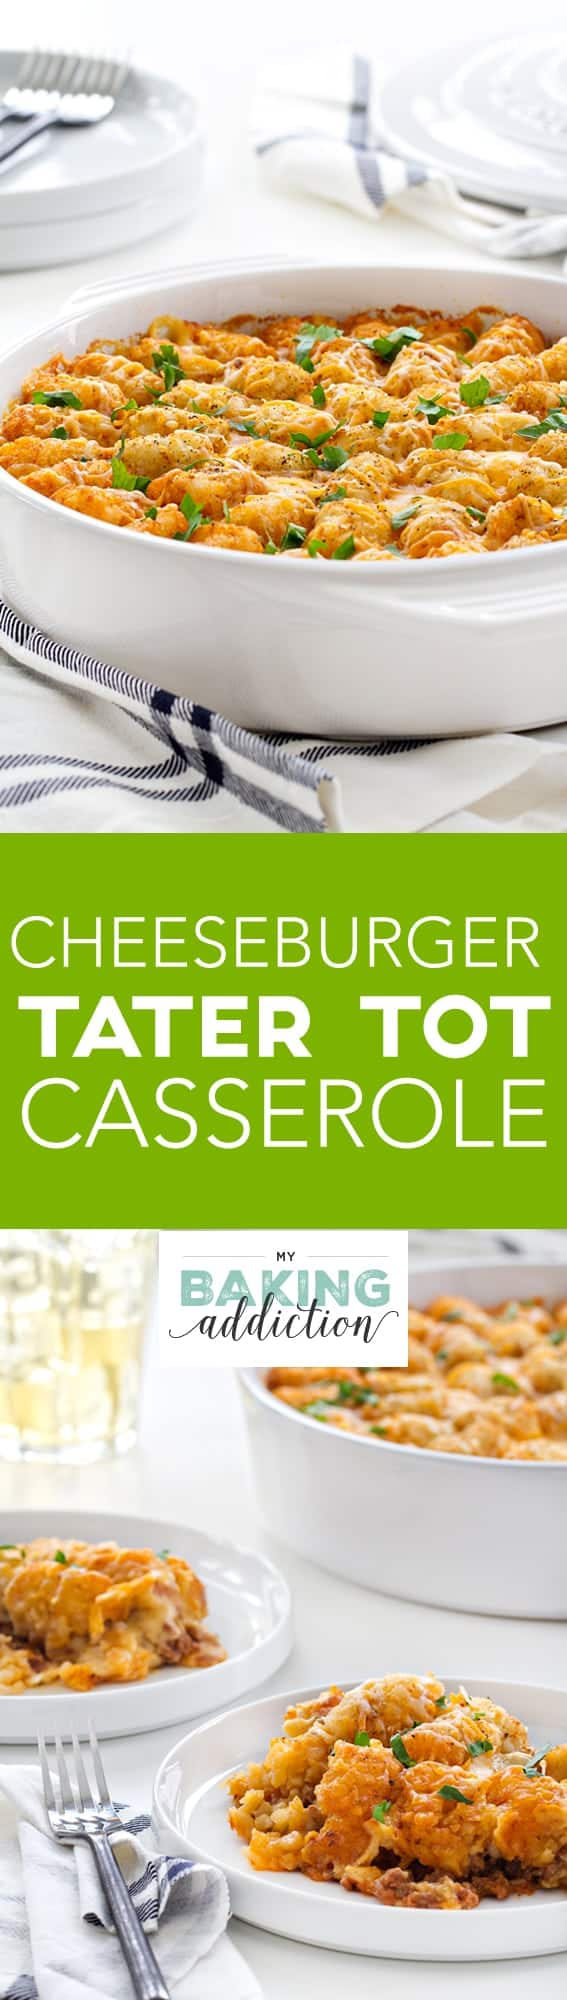 Cheeseburger Tater Tot Casserole is everything you need for a cozy winter dinner.